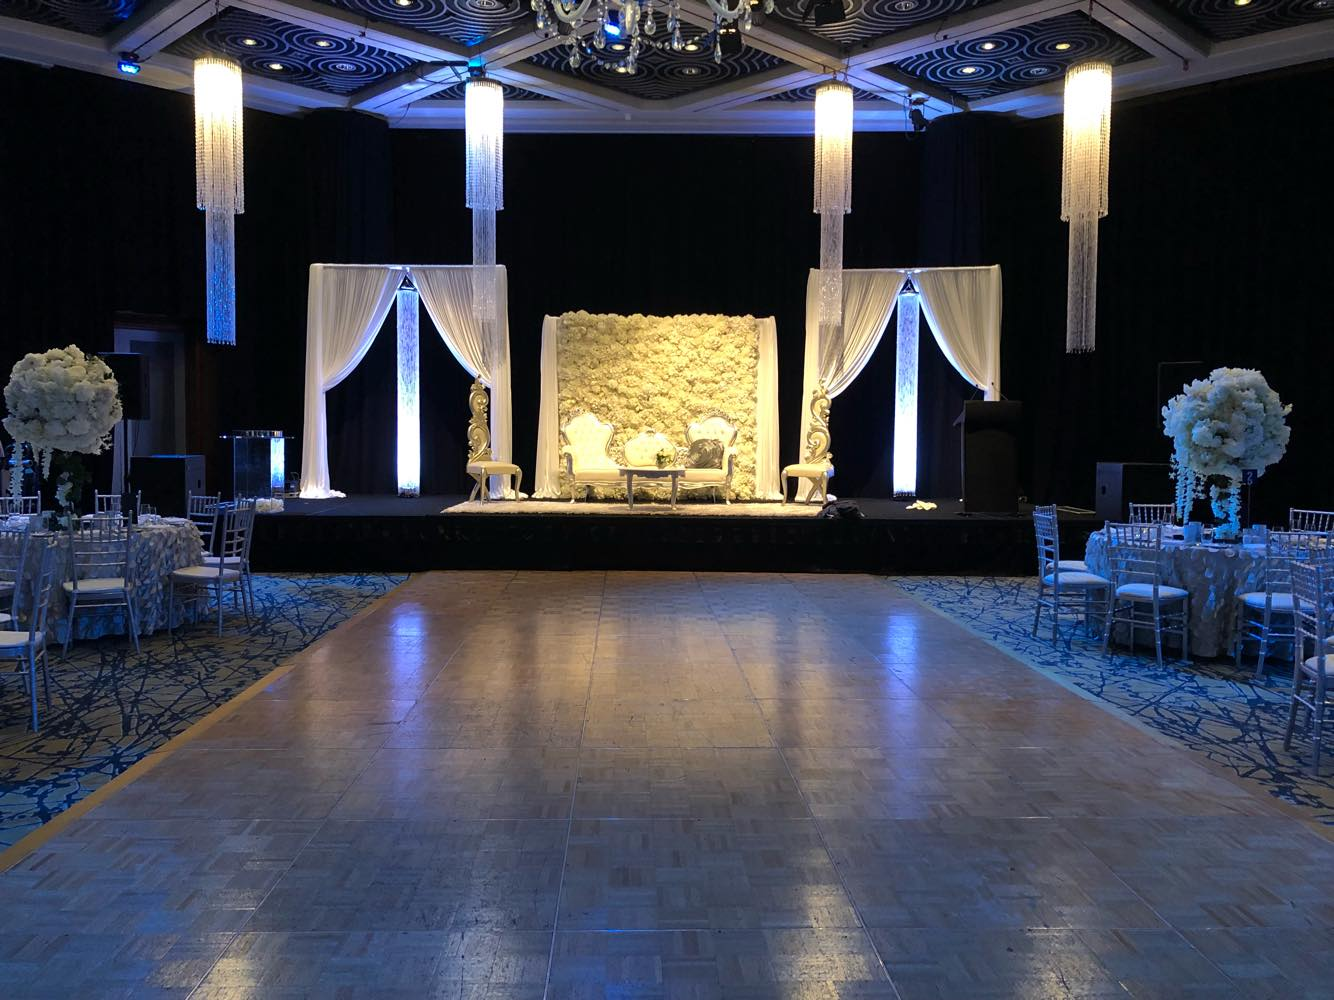 Wedding reception with dancefloor in Grand Ballroom at Hyatt Regency Perth